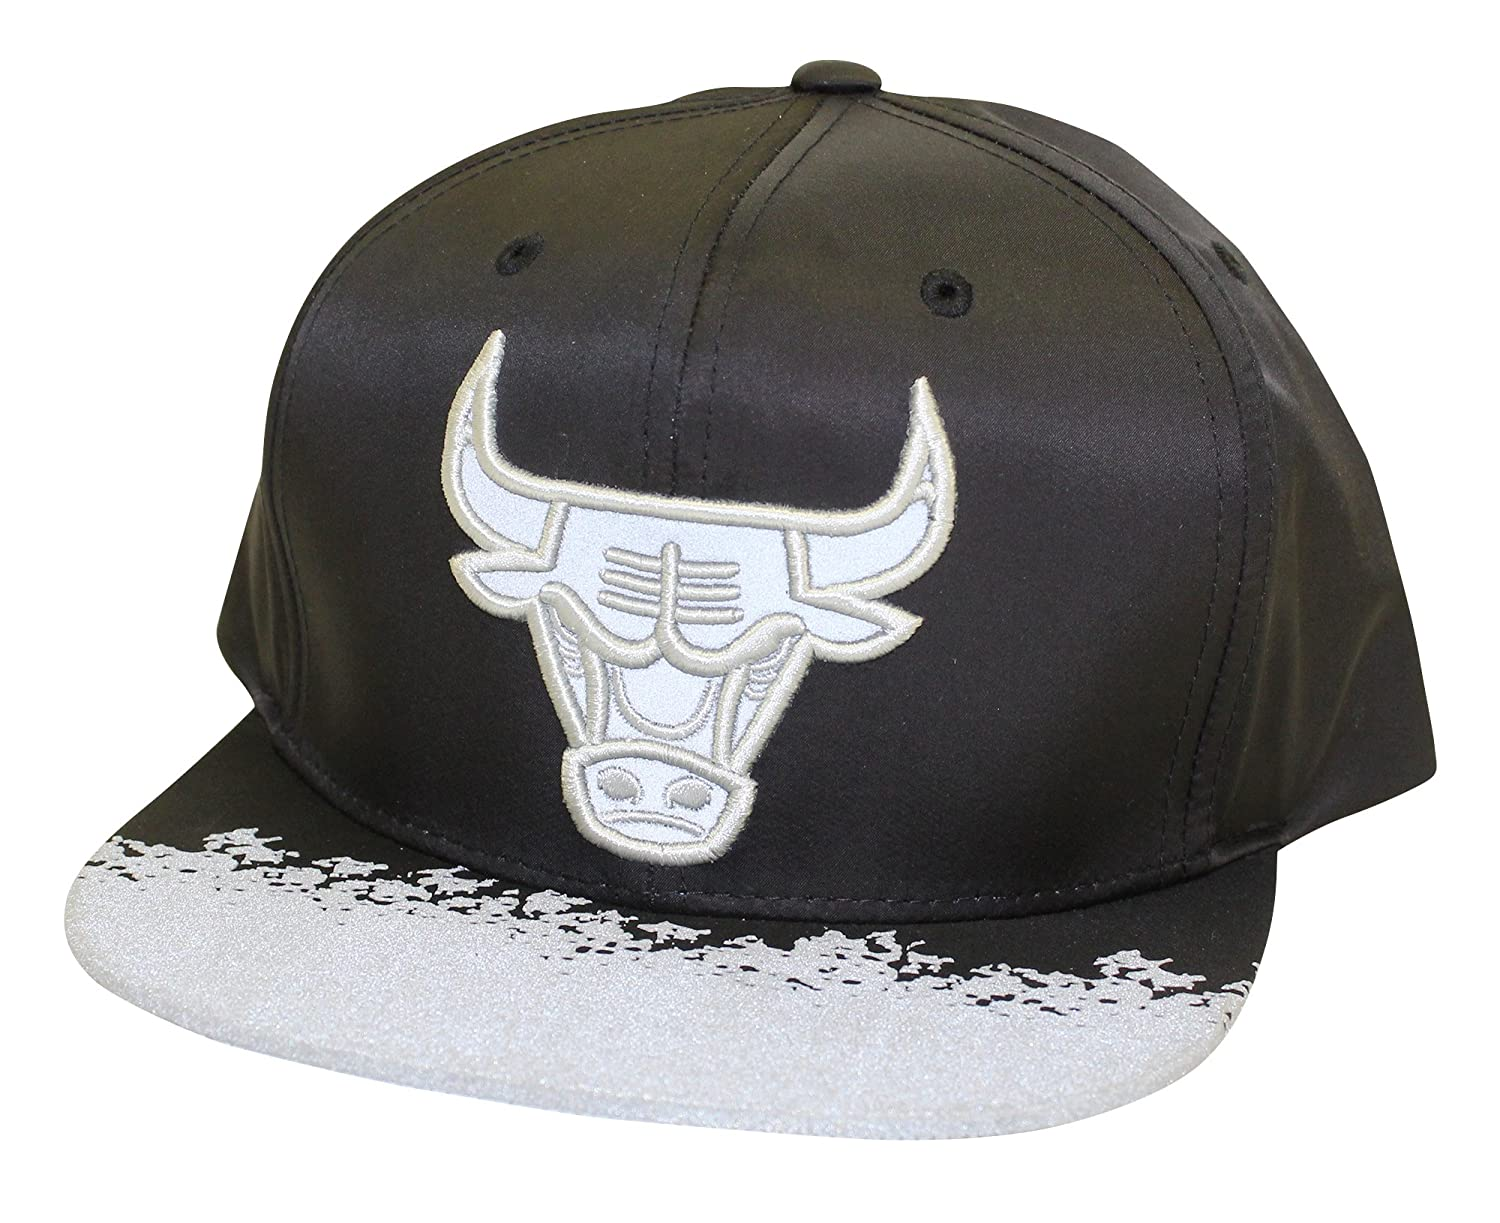 new concept 15496 a122b Mitchell   Ness Men s NBA Chicago Bulls Reflective Lava Snapback Hat,  Black, One Size at Amazon Men s Clothing store